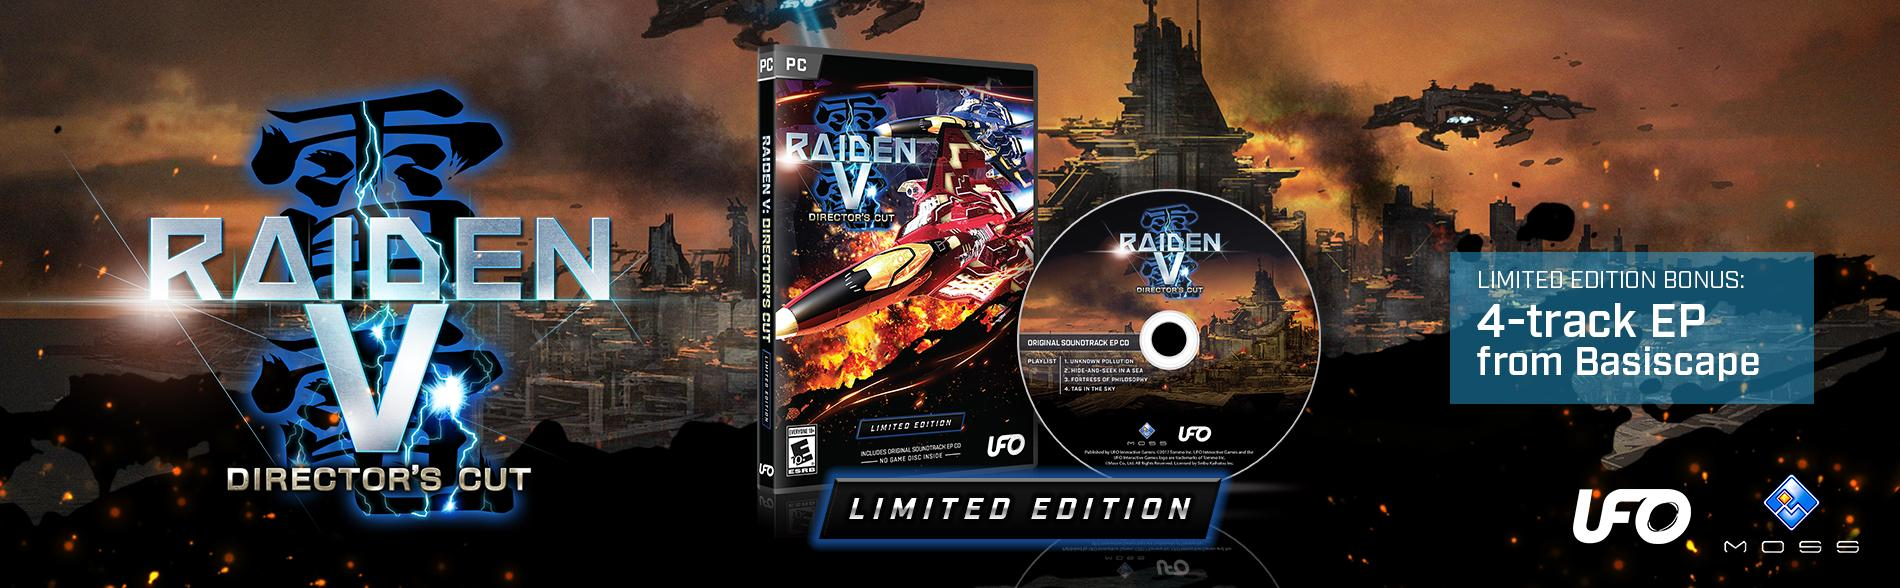 Amazon com: Raiden V: Director's Cut Limited Edition With